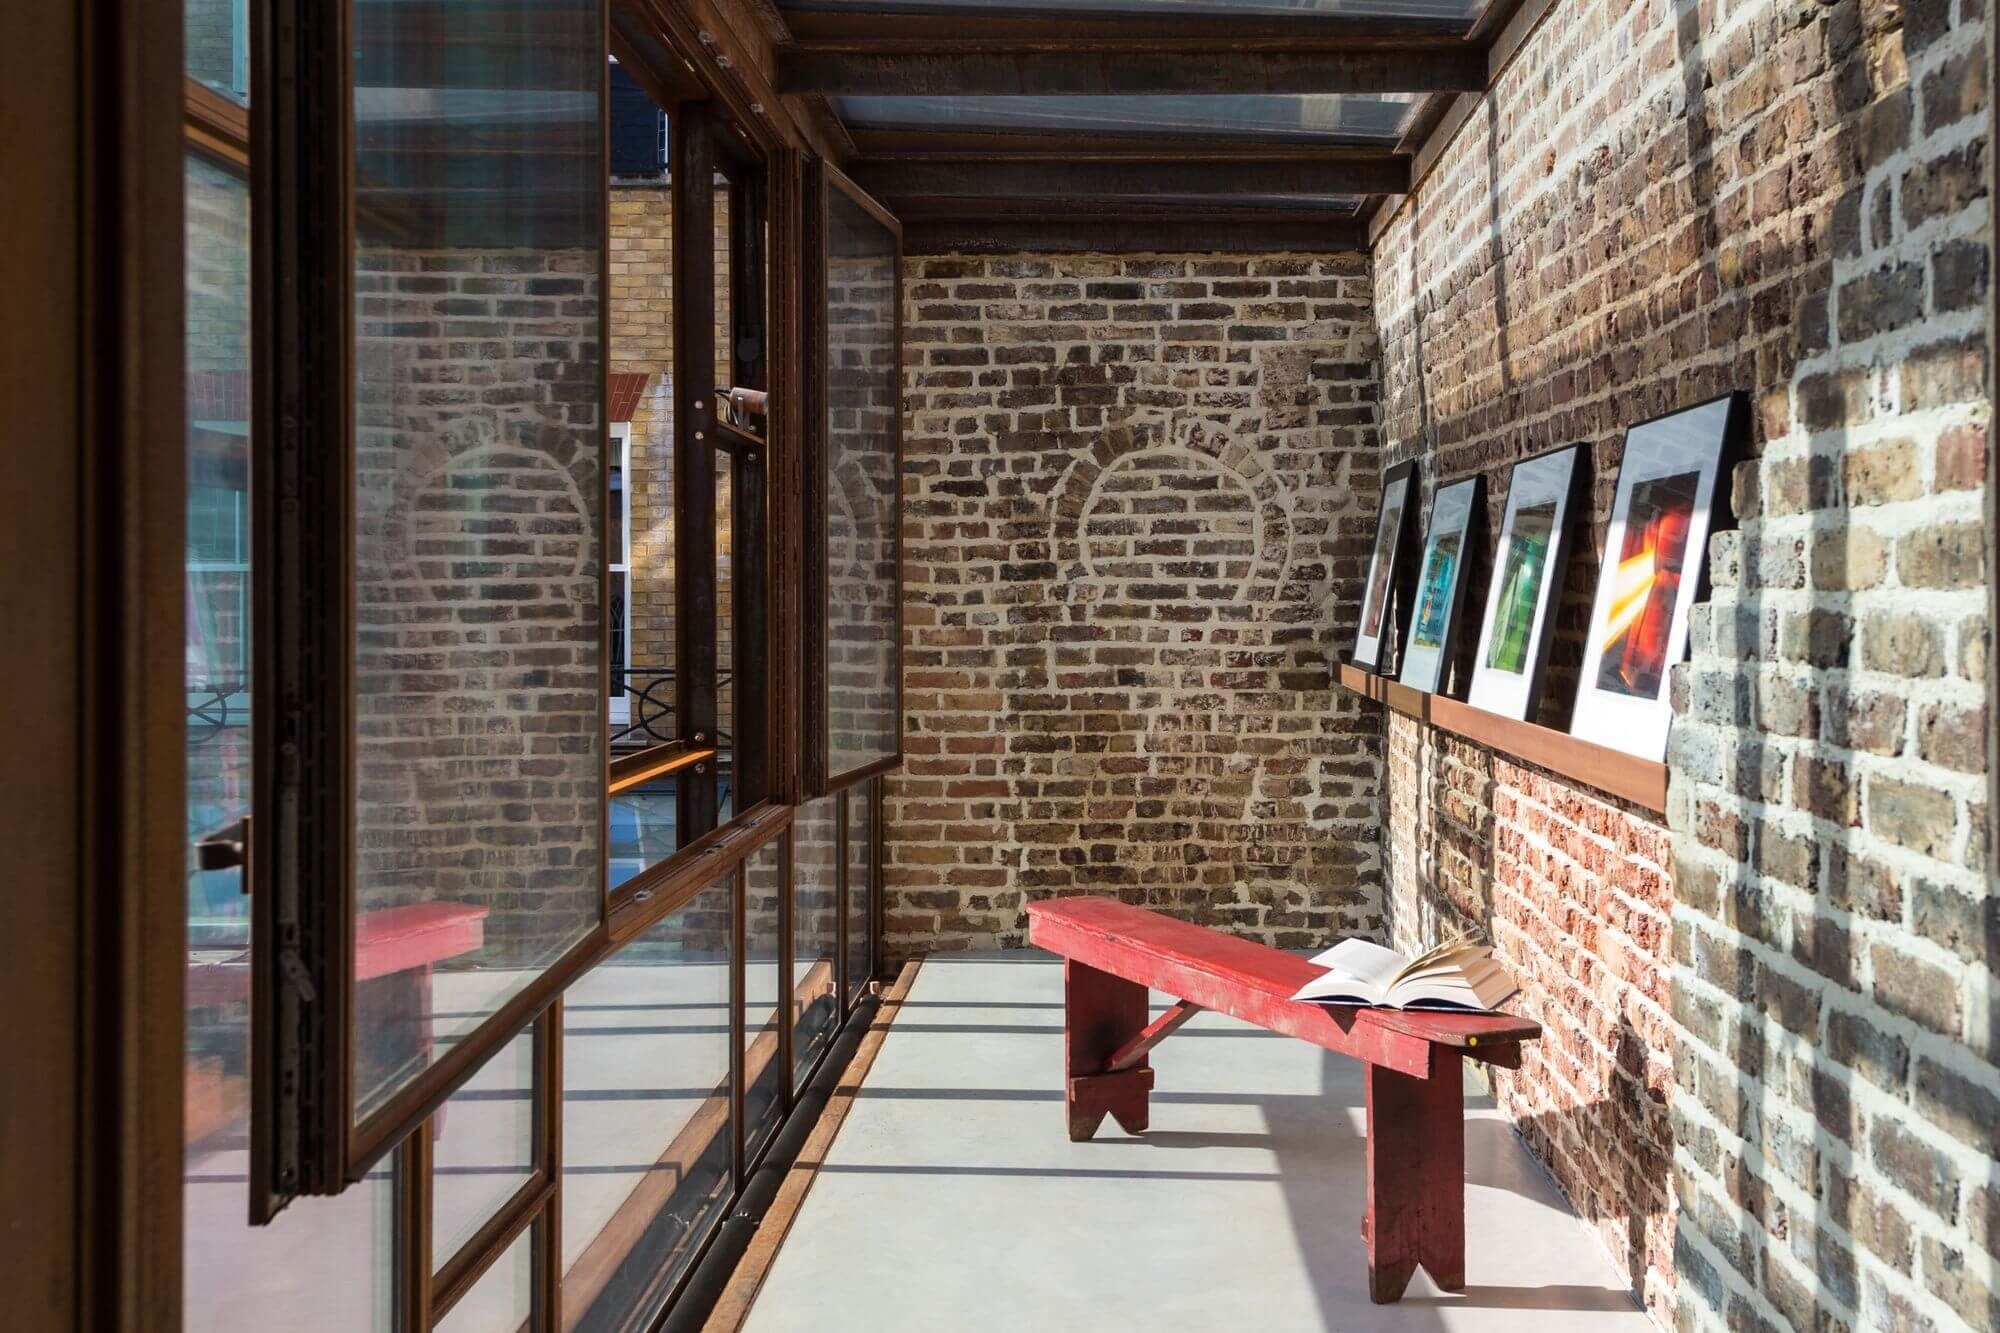 Corridor With Concrete Floor Large Windows Brick Walls And Pictures The Private Art Gallery In London By Gianni Botsford Architects